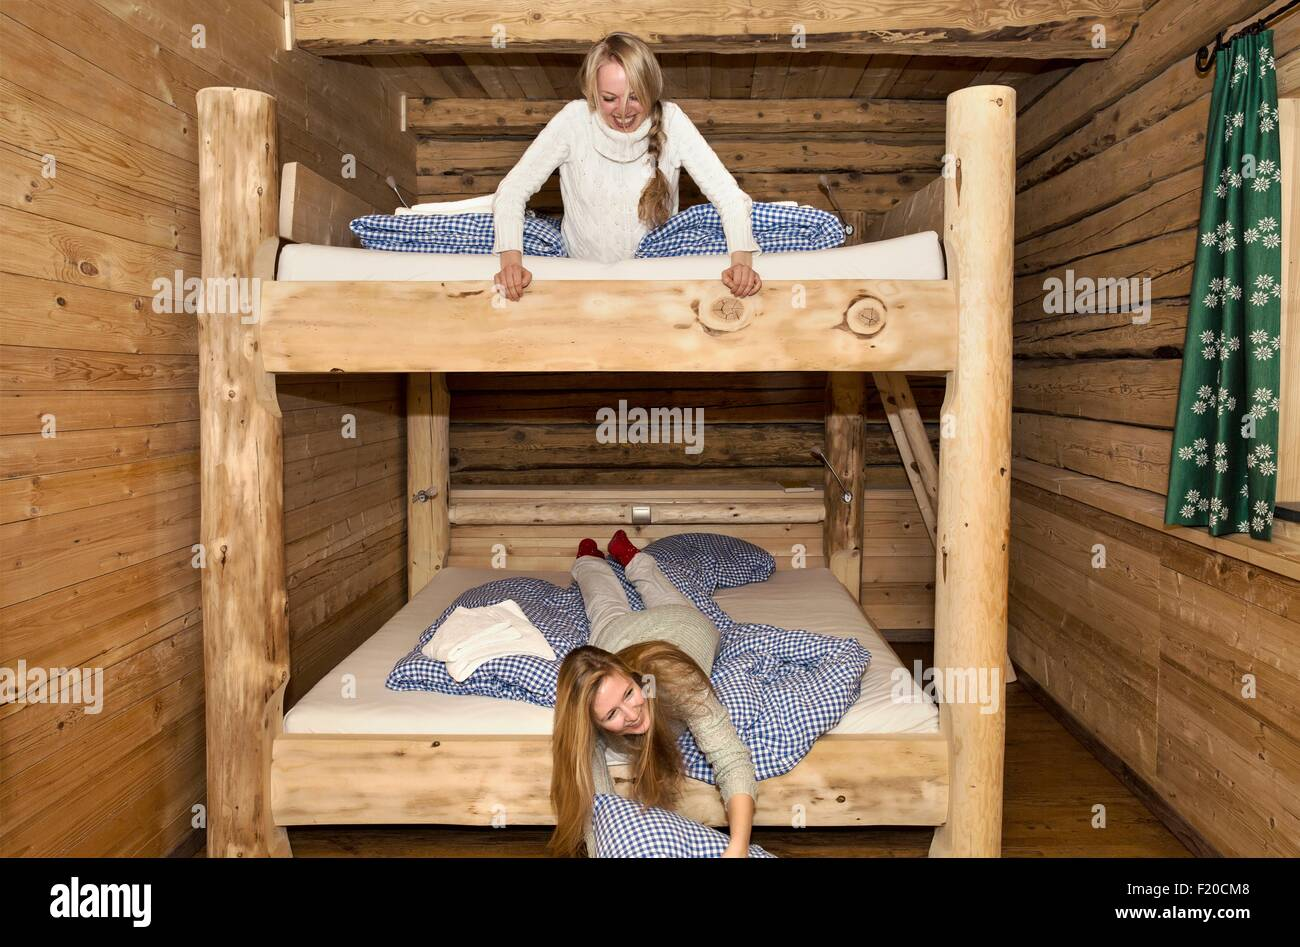 Two young women friends fooling around on bunk beds in log cabin - Stock Image